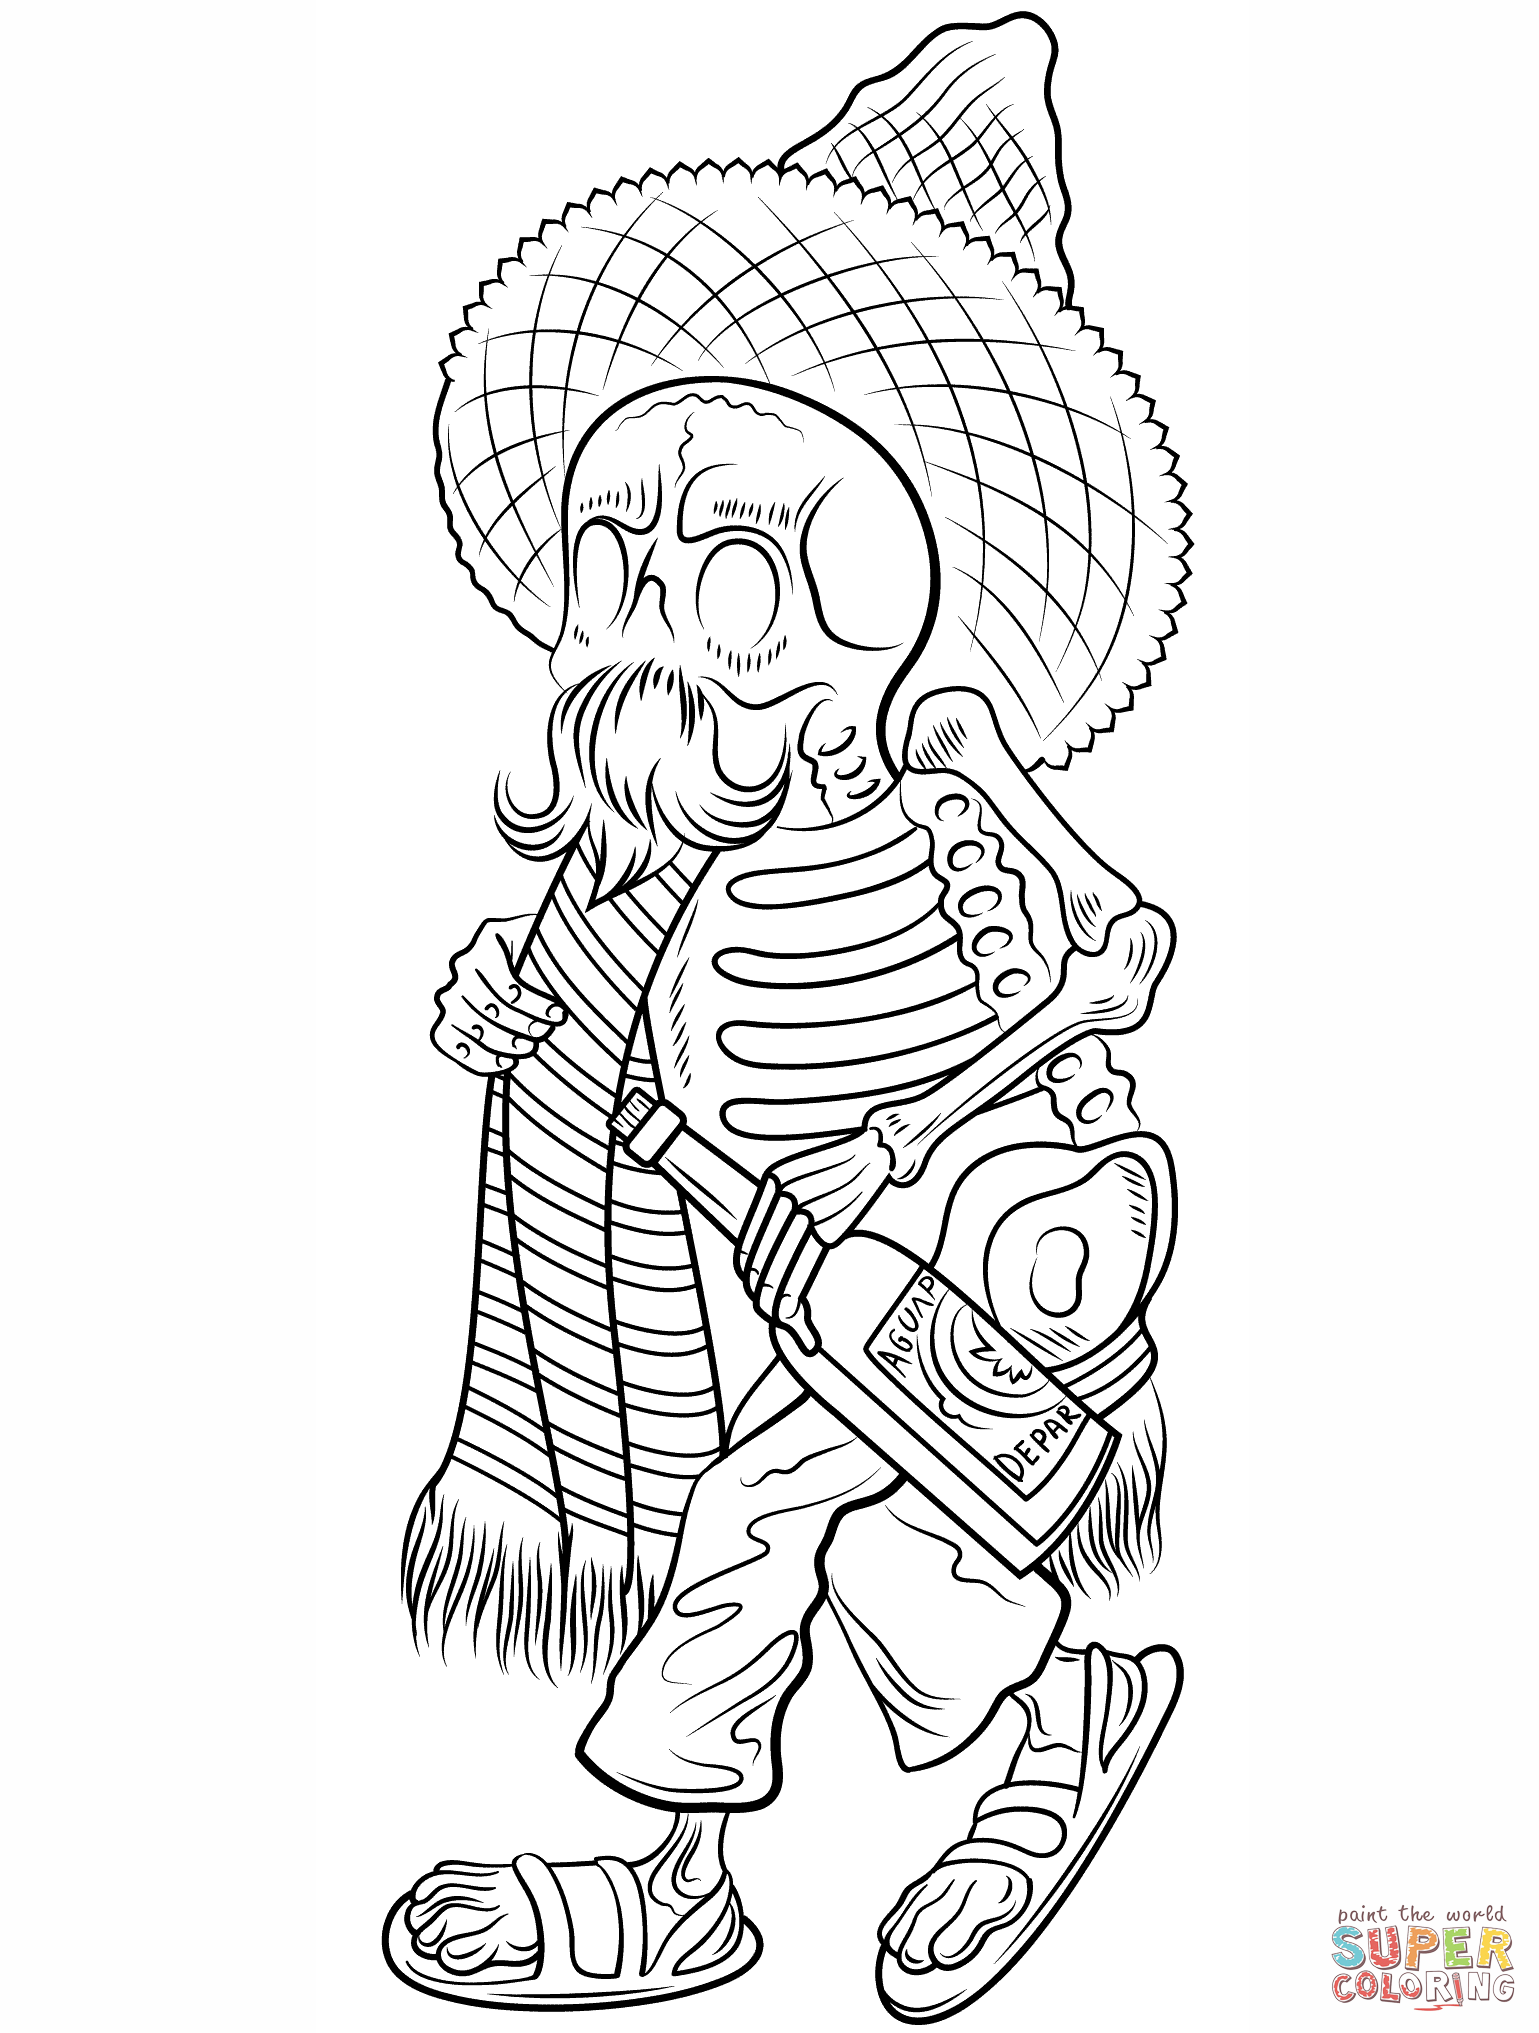 Day Of The Dead Skeleton In Poncho And Sombrero Coloring